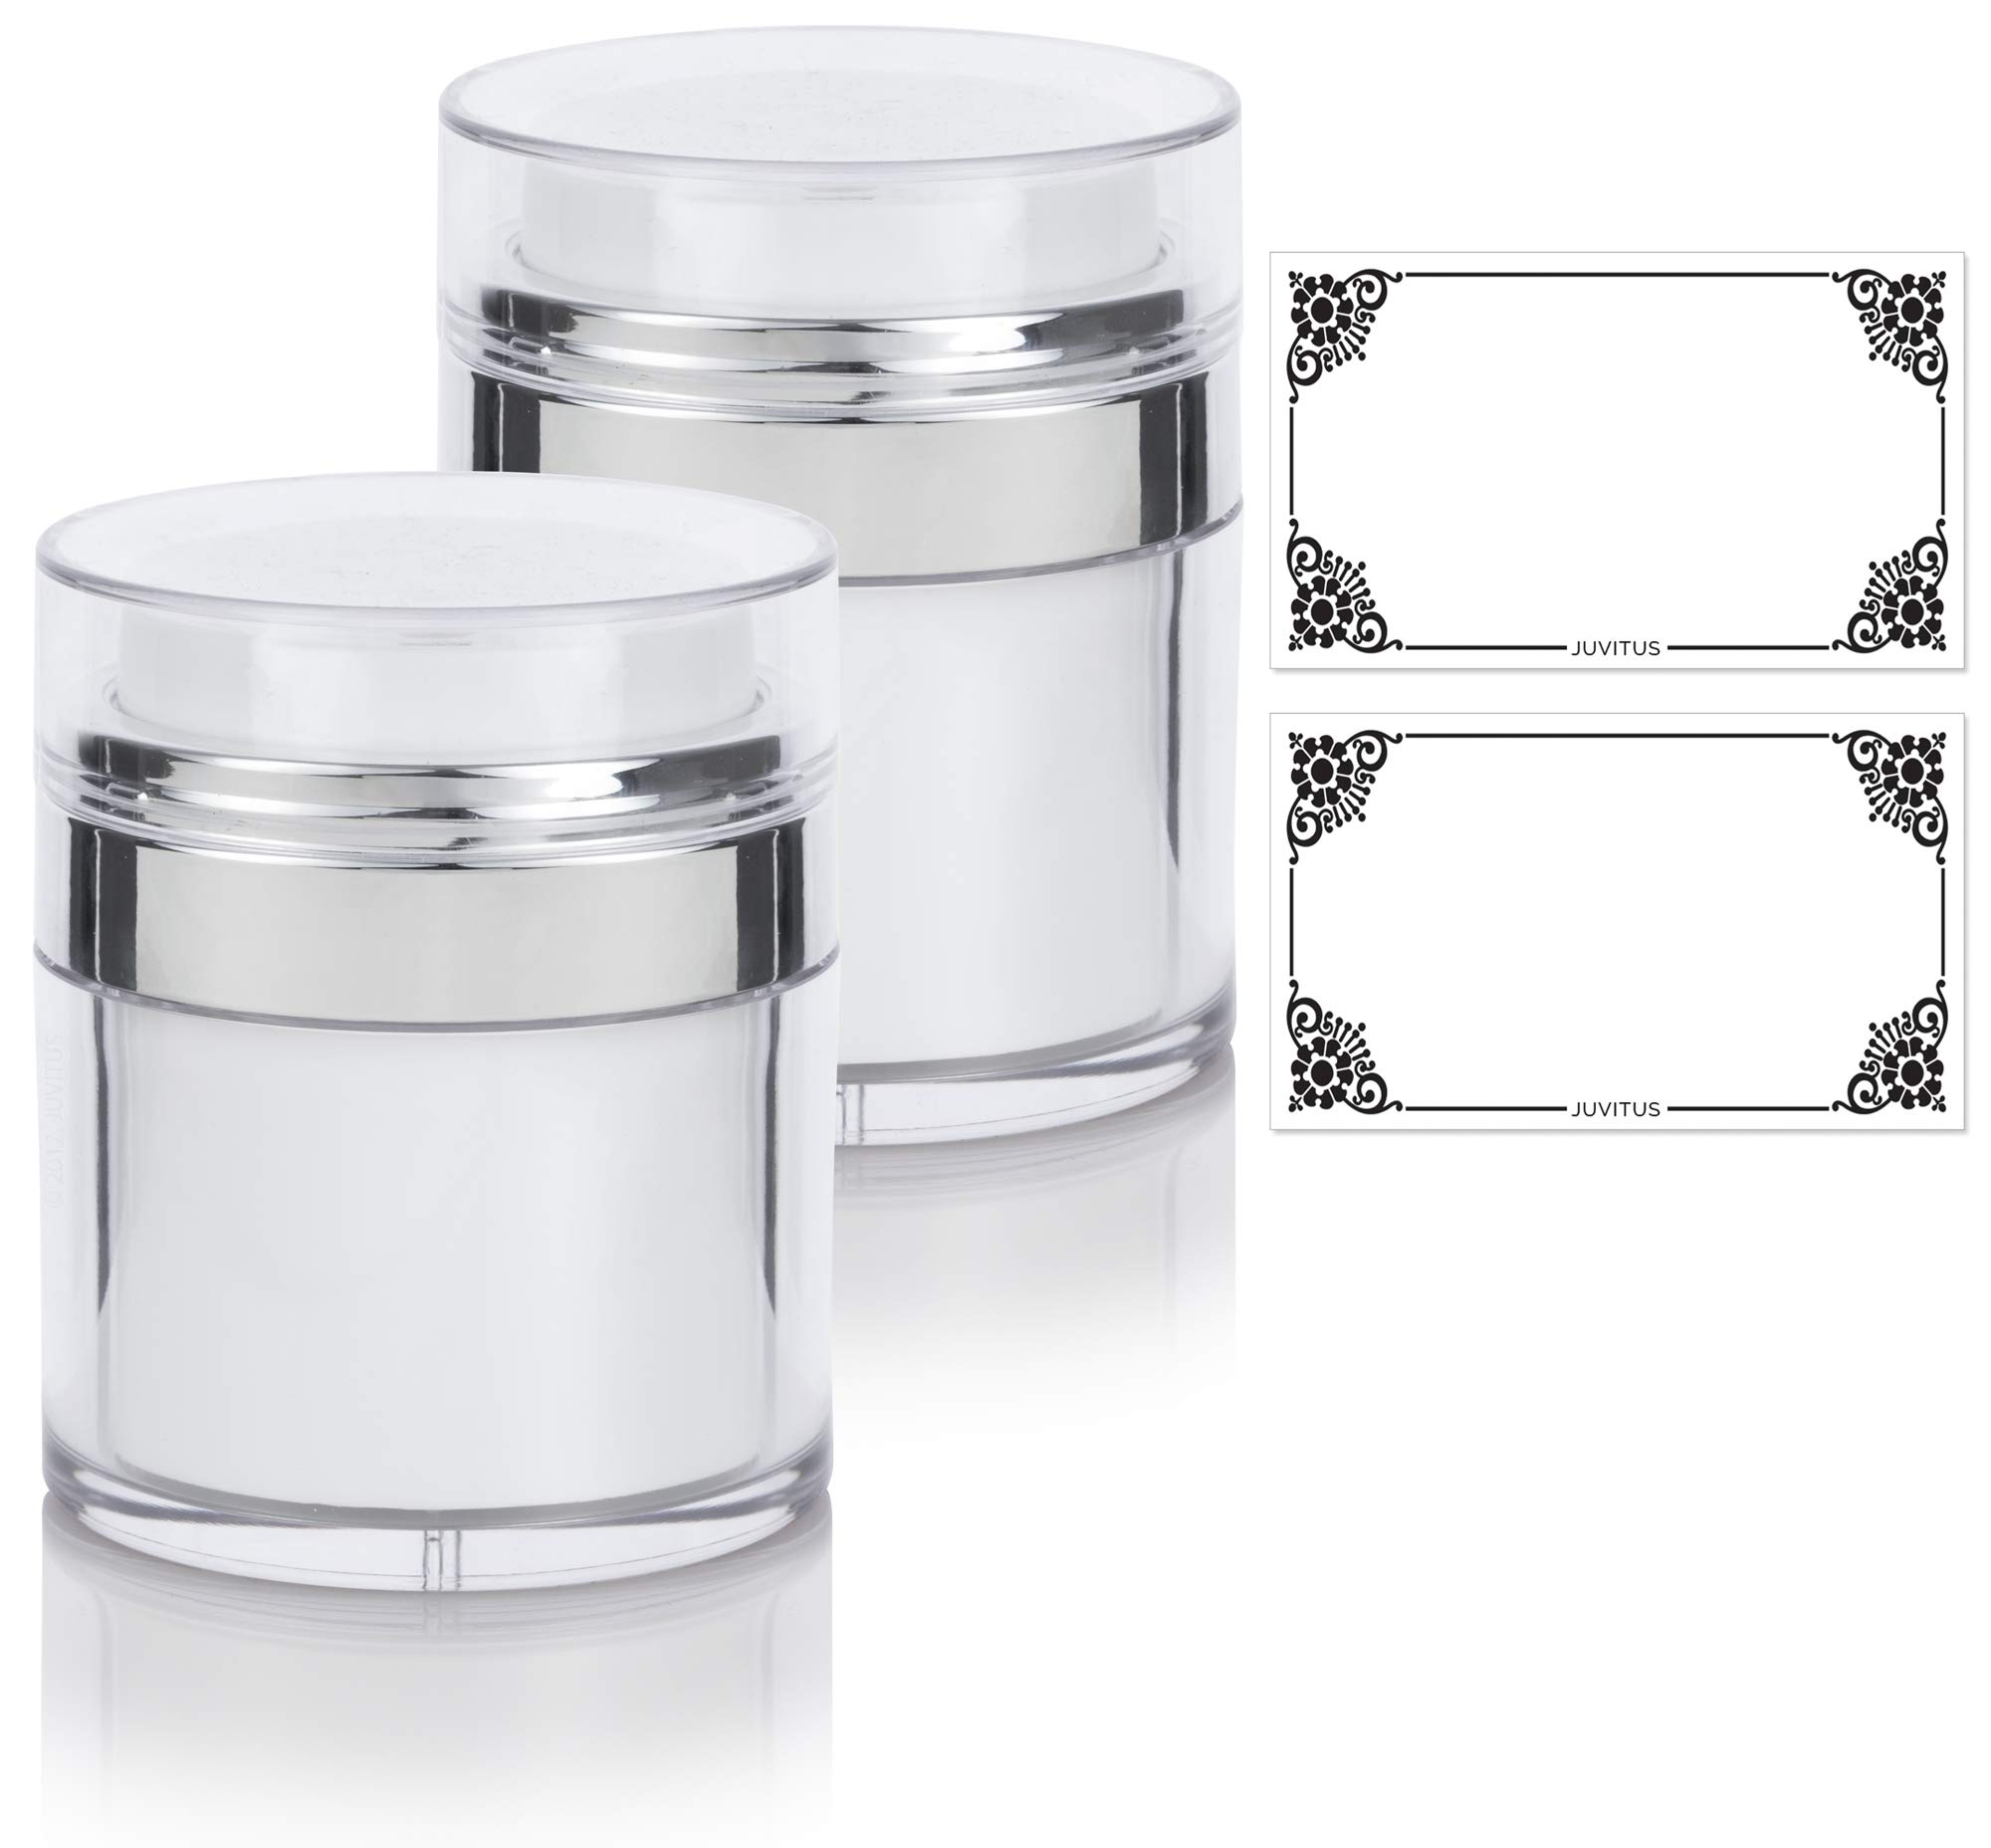 1.7 oz / 50 ml White Airless Refillable Jar (2 PACK) + Labels - keeps out air changing oxidation from your skin care products - durable, leak proof, and shatterproof for home or travel